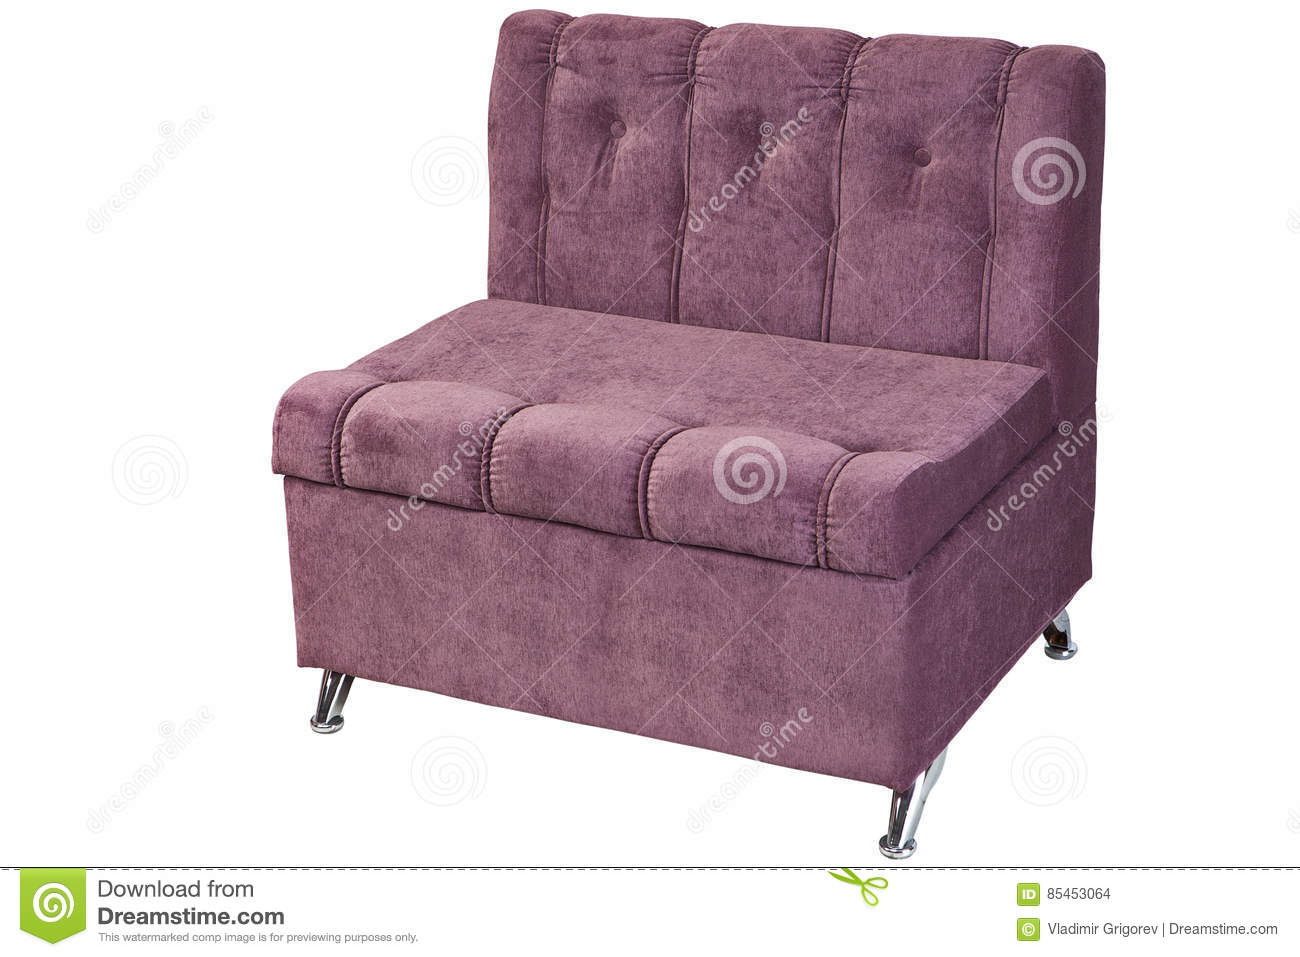 Pleasant Sofa Bed Chair Transform Into A Single Bed Pull Out Armchair Machost Co Dining Chair Design Ideas Machostcouk